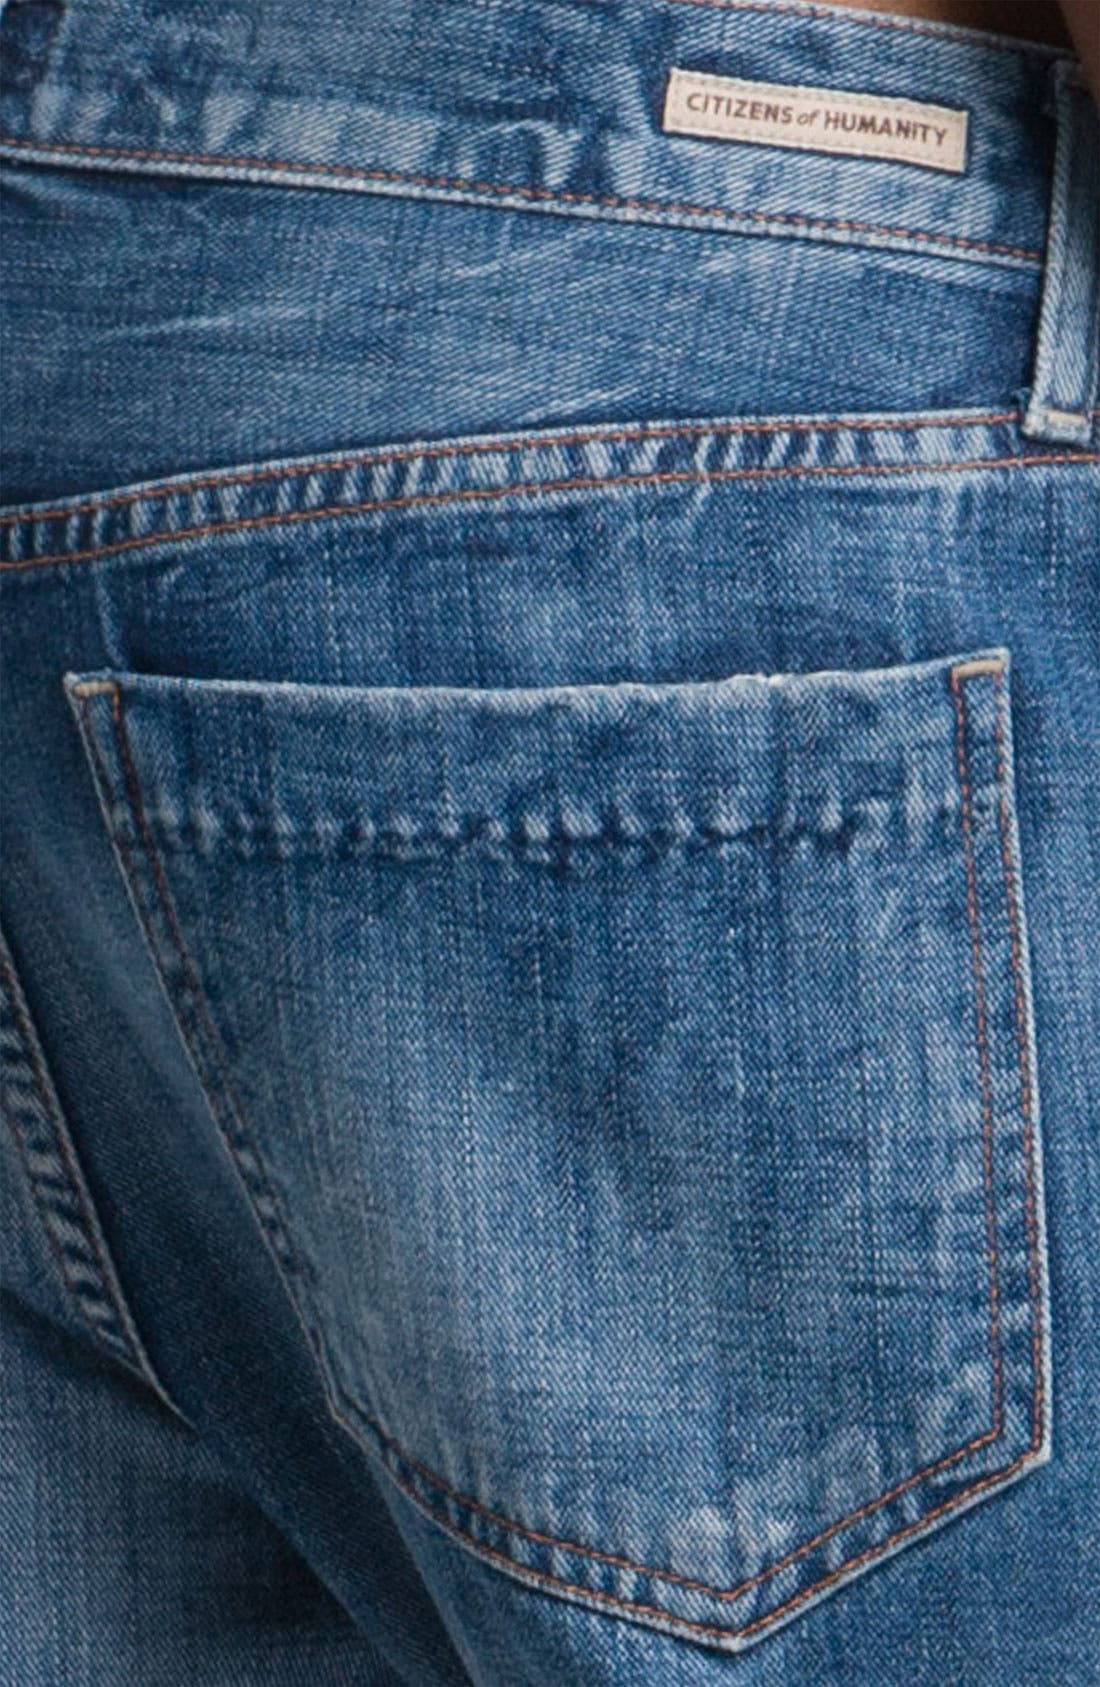 Alternate Image 3  - Citizens of Humanity 'Daisy' Crop Loose Fit Jeans (Plunge)